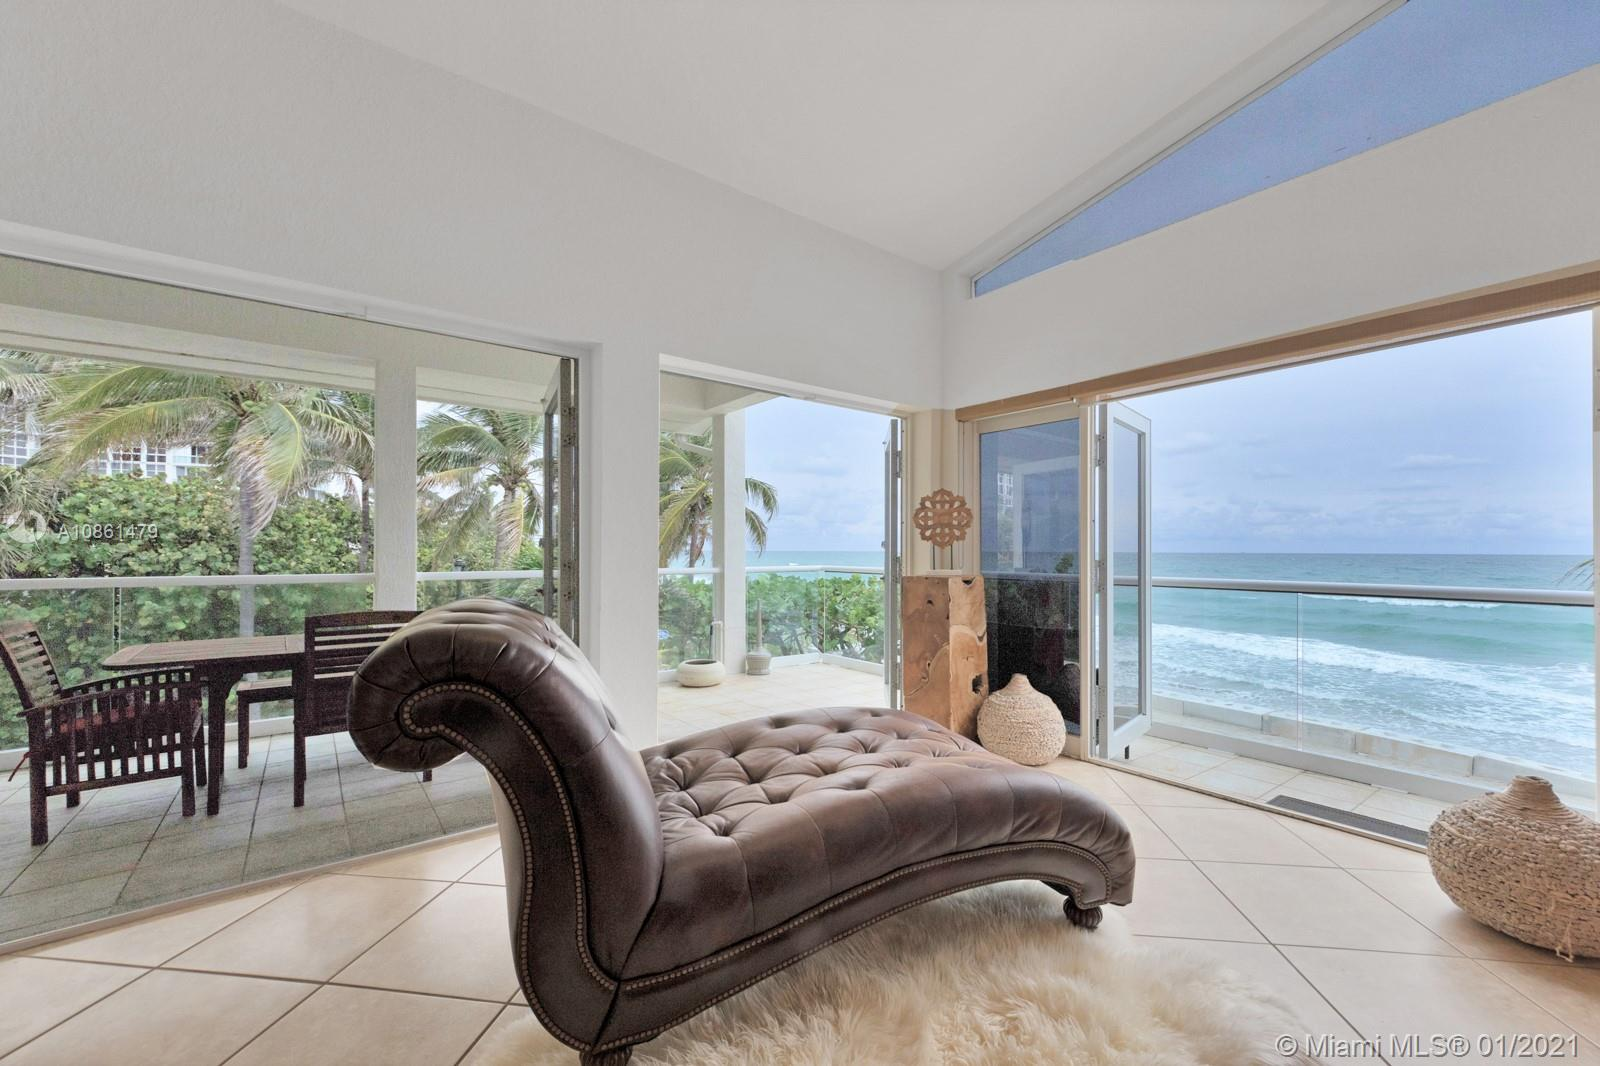 Spectacular two-story 5 bedroom 4 bathroom oceanfront residence with stunning direct ocean views, located in the private residential area of North Hollywood Beach where the sky meets the ocean and sand. This house features a large family room with gas fireplace, open gourmet kitchen with granite counter tops, stainless steel appliances,Viking gas ranges, custom-built bar. Outside patio with GE gas BBQ/kitchen with additional charcoal BBQ and hot tub. This is the dream Hollywood location to a natural ambiance and a soothing atmosphere. This is a rare opportunity to own one of the largest lot in famous Hollywood Beach.